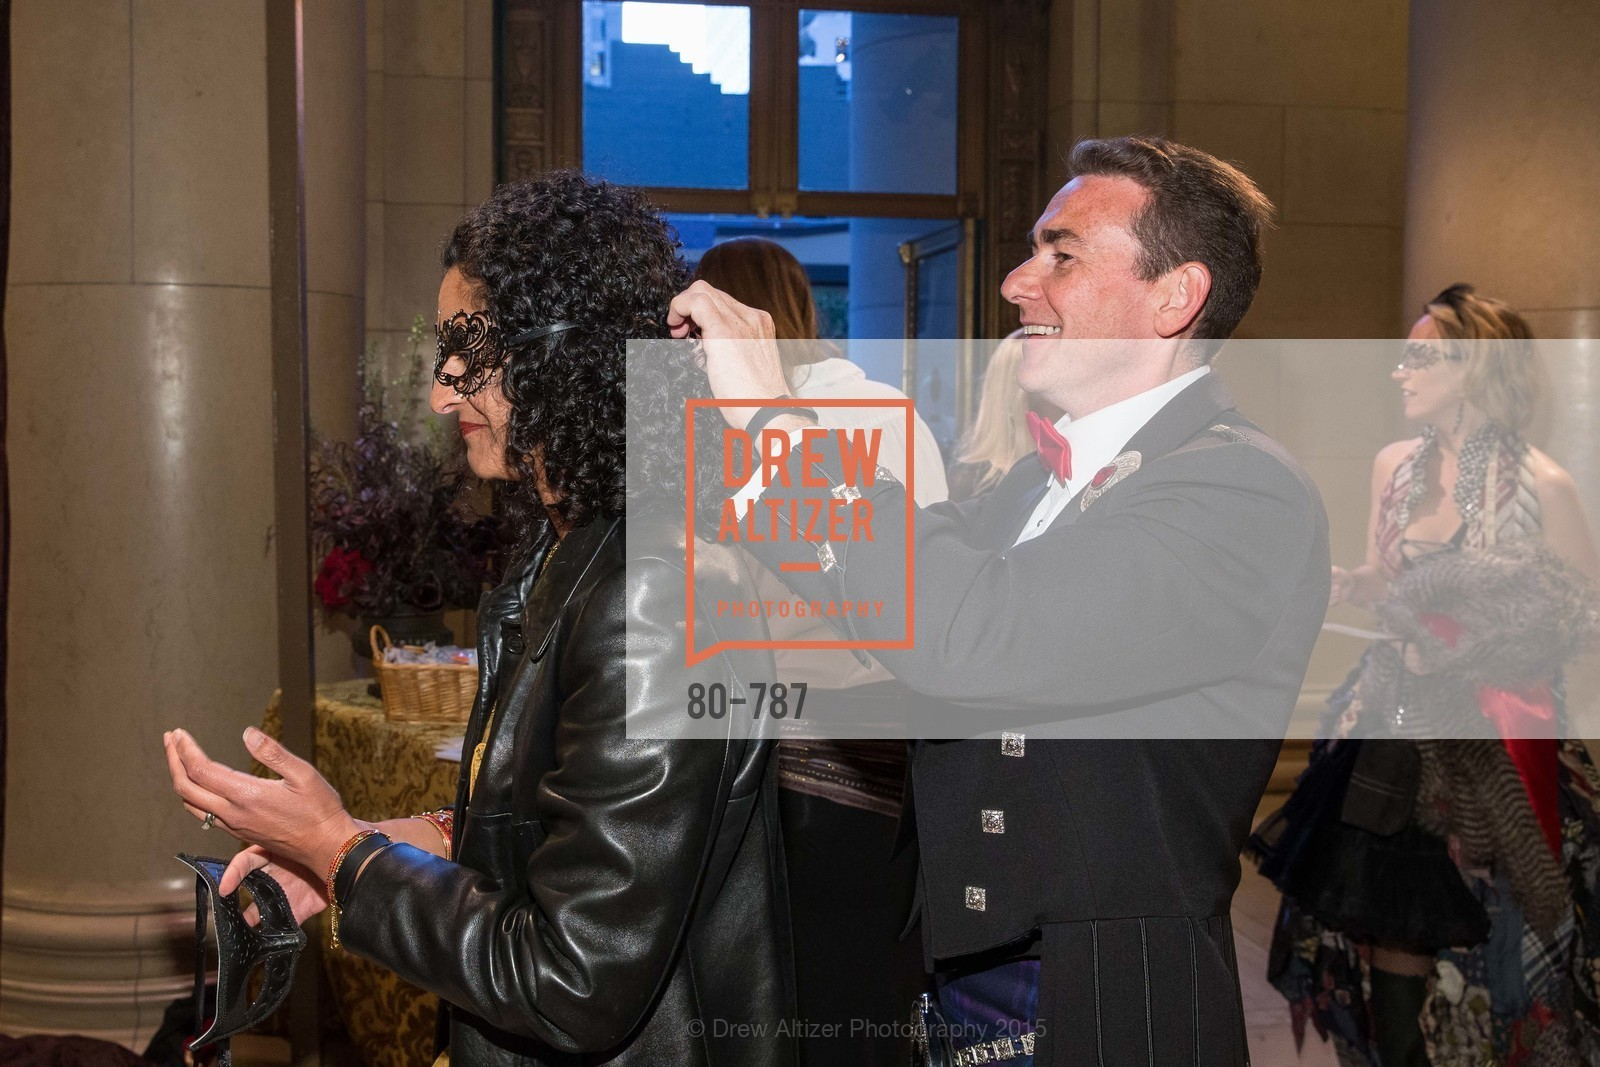 Alya McGinlay, Paul McGinlay, Bently Engagement, US, April 14th, 2015,Drew Altizer, Drew Altizer Photography, full-service agency, private events, San Francisco photographer, photographer california